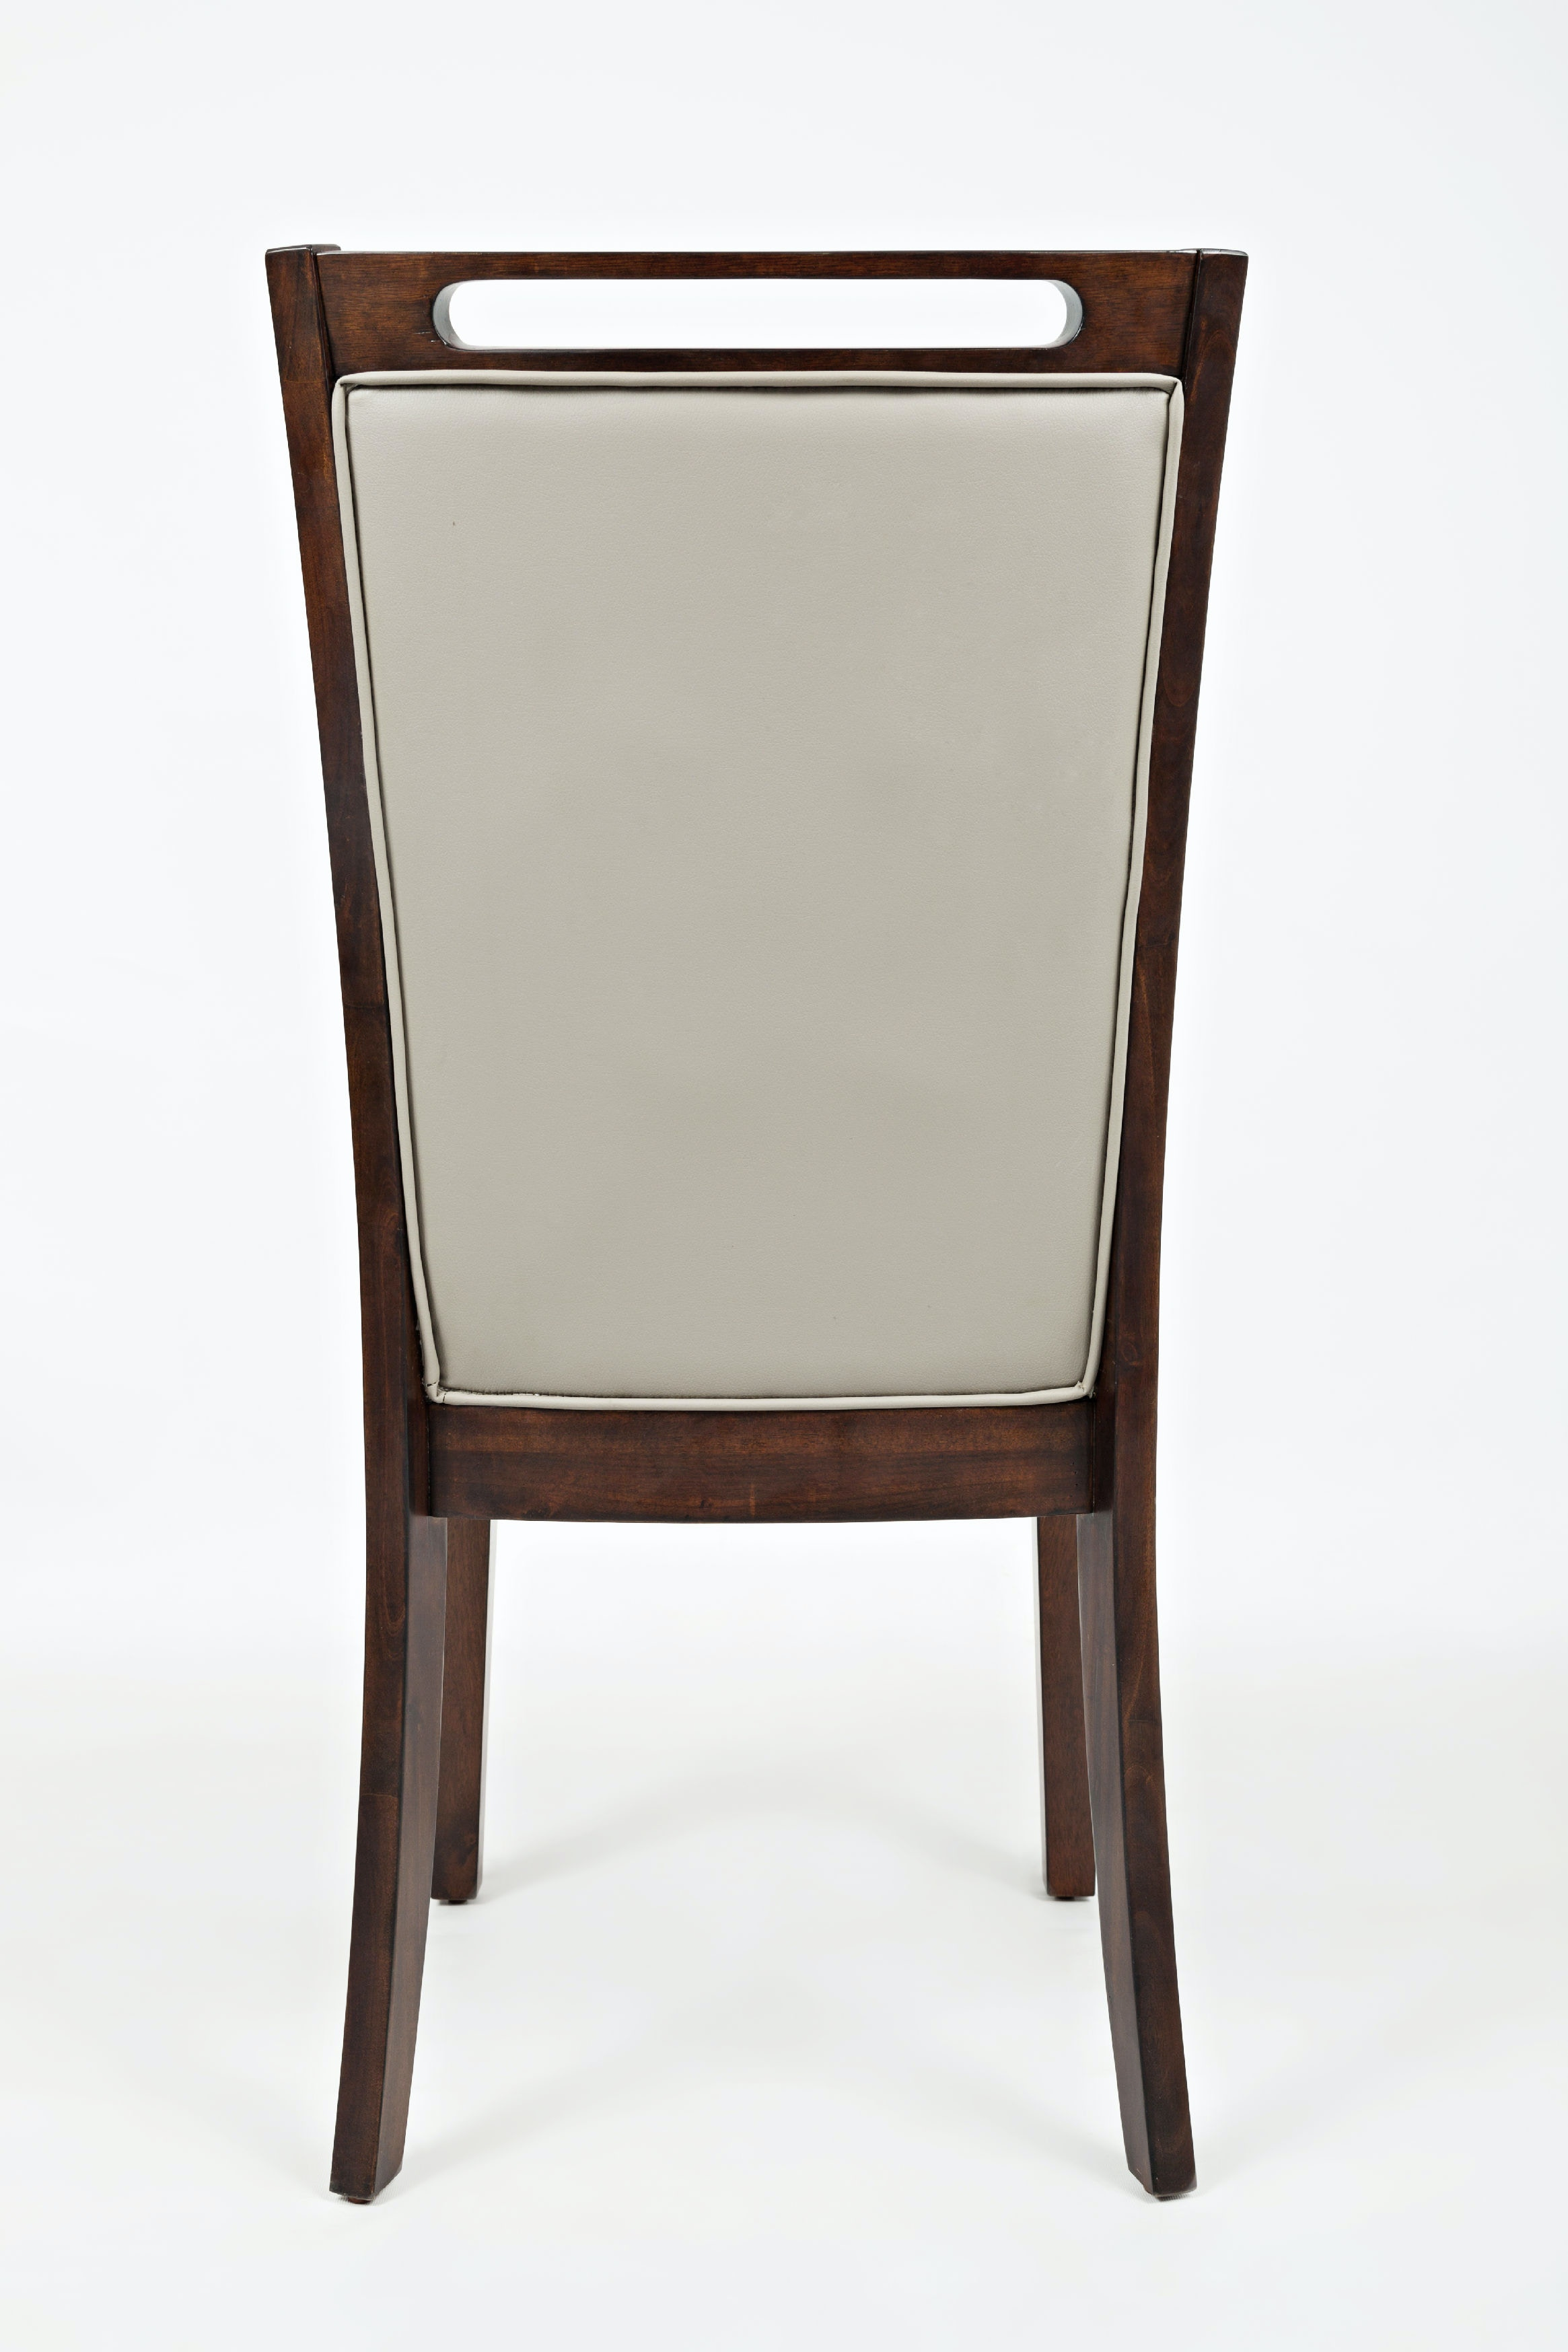 Jofran Dining Room Upholstered Dining Chair Grey PU 2Ctn  : 1672 385kd20back from www.jensenfurniture.com size 1024 x 768 jpeg 17kB